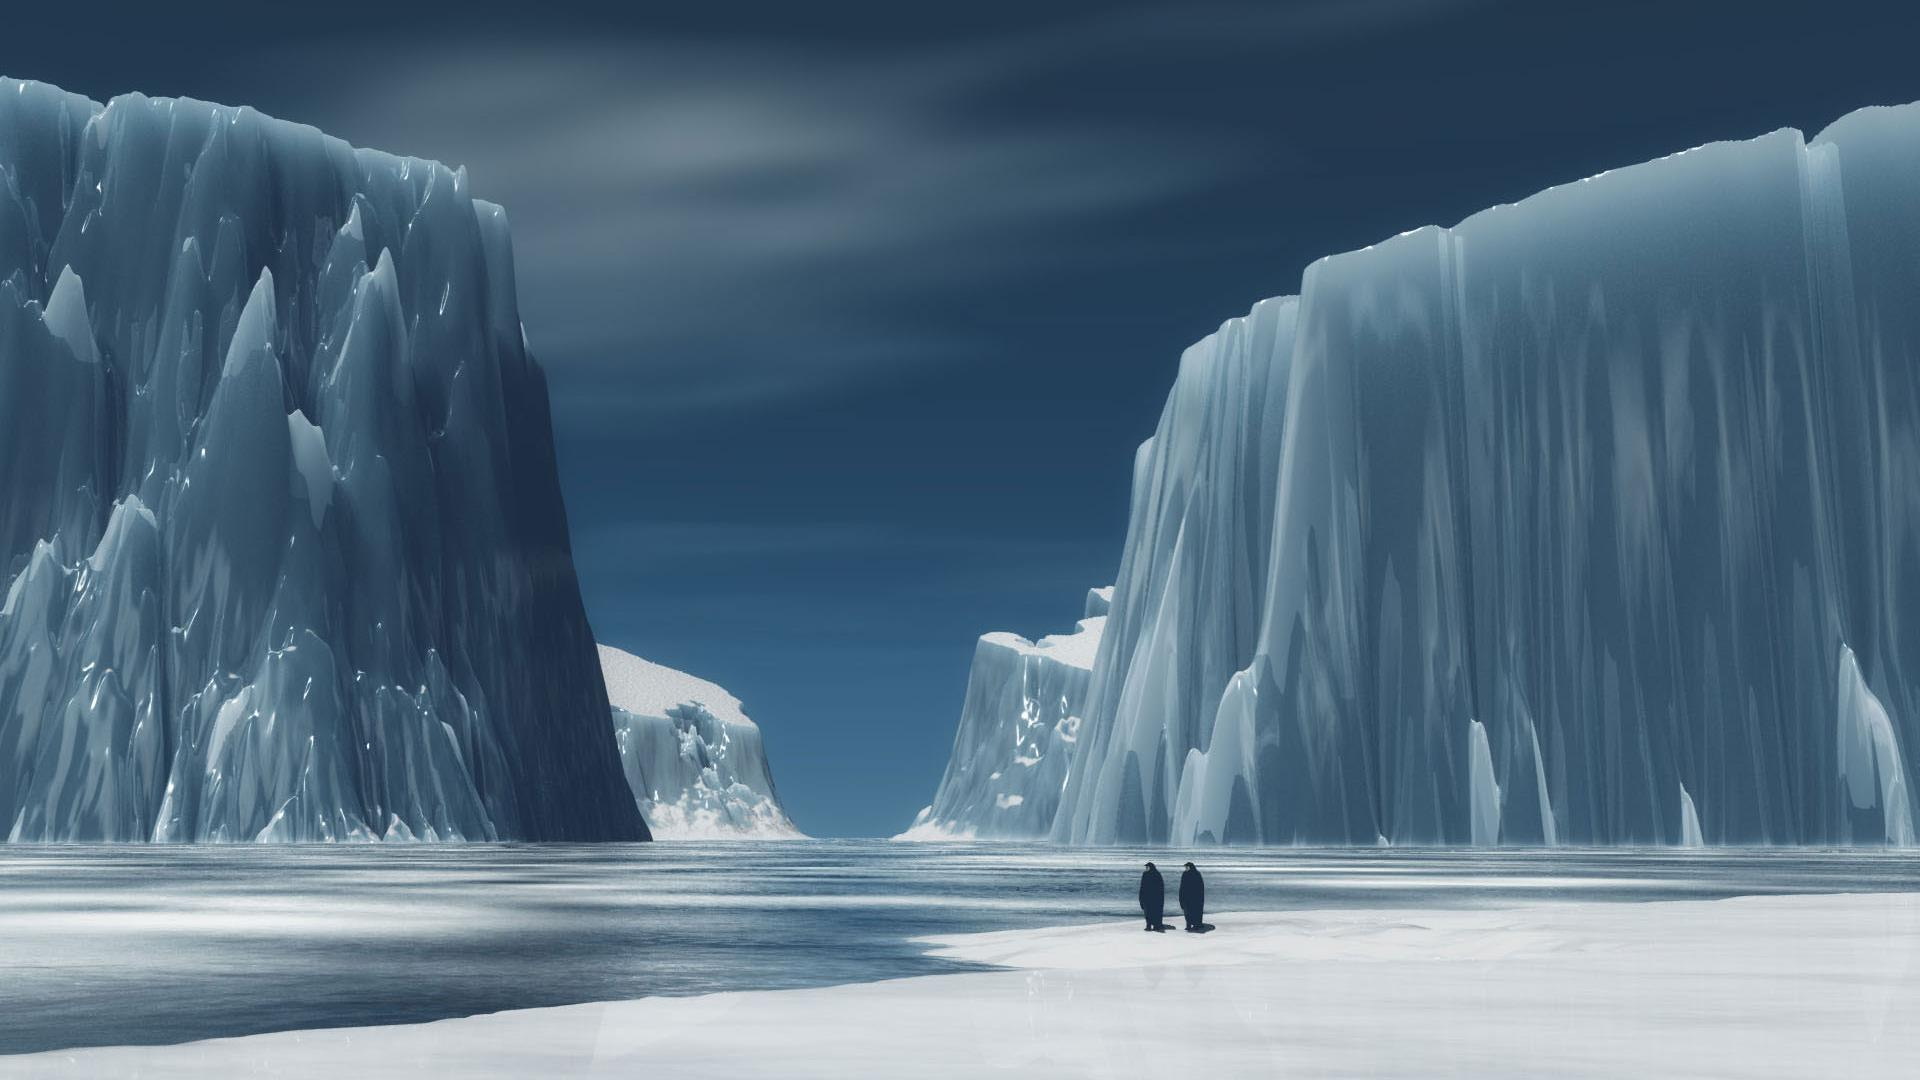 The Sunvo Glacier Desktop Backgrounds Widescreen and HD backgrounds